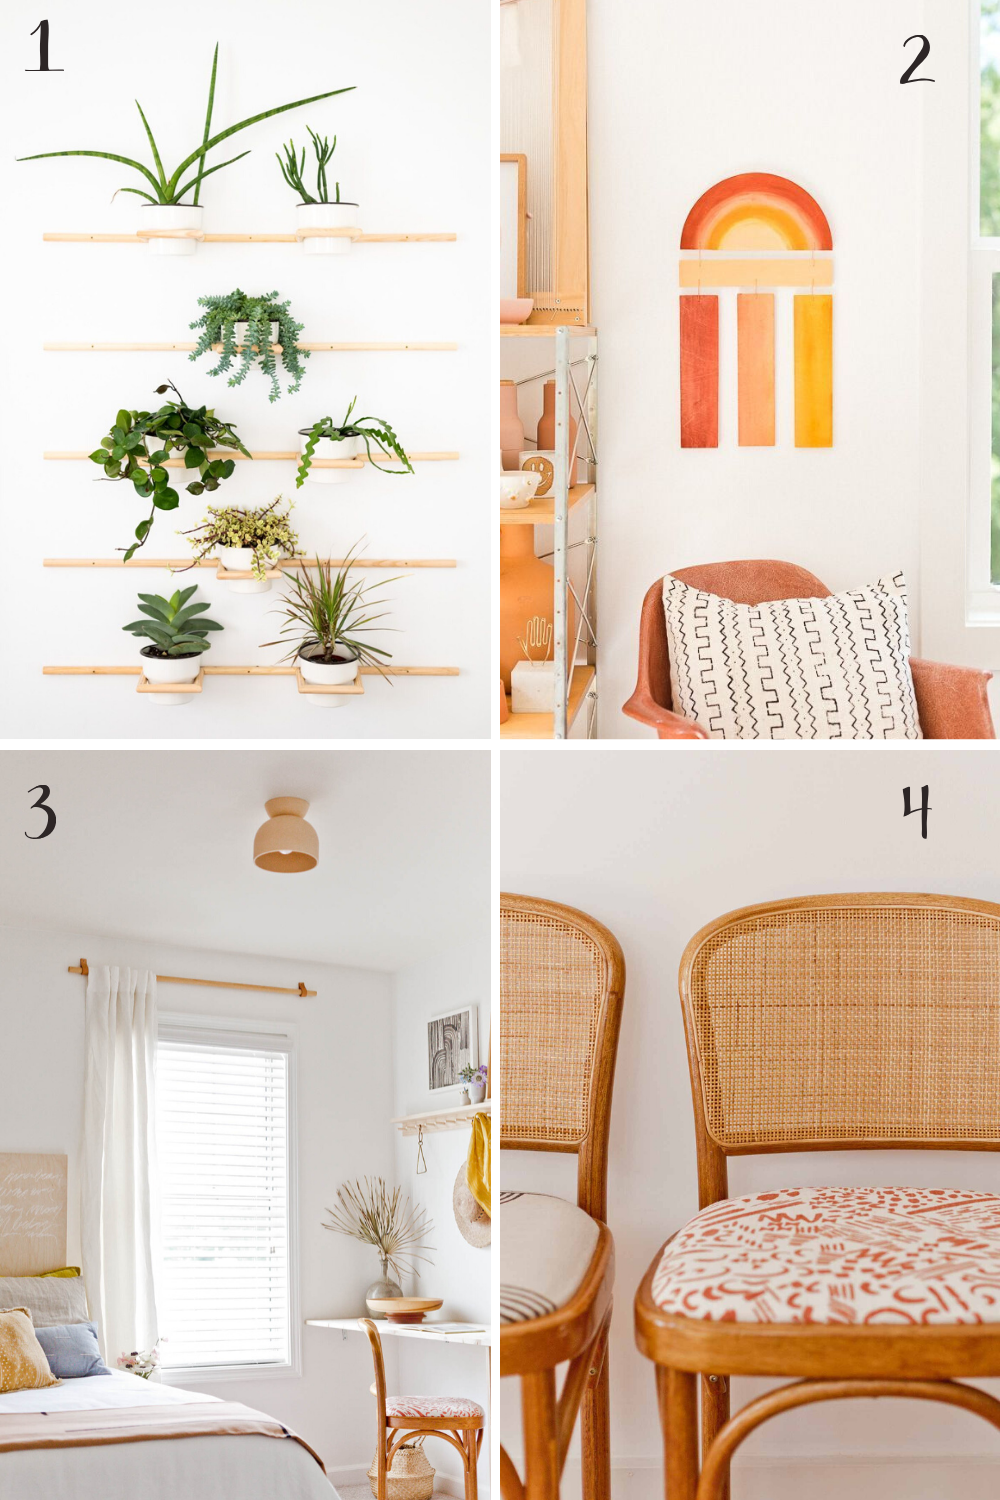 Bedroom Decor Projects